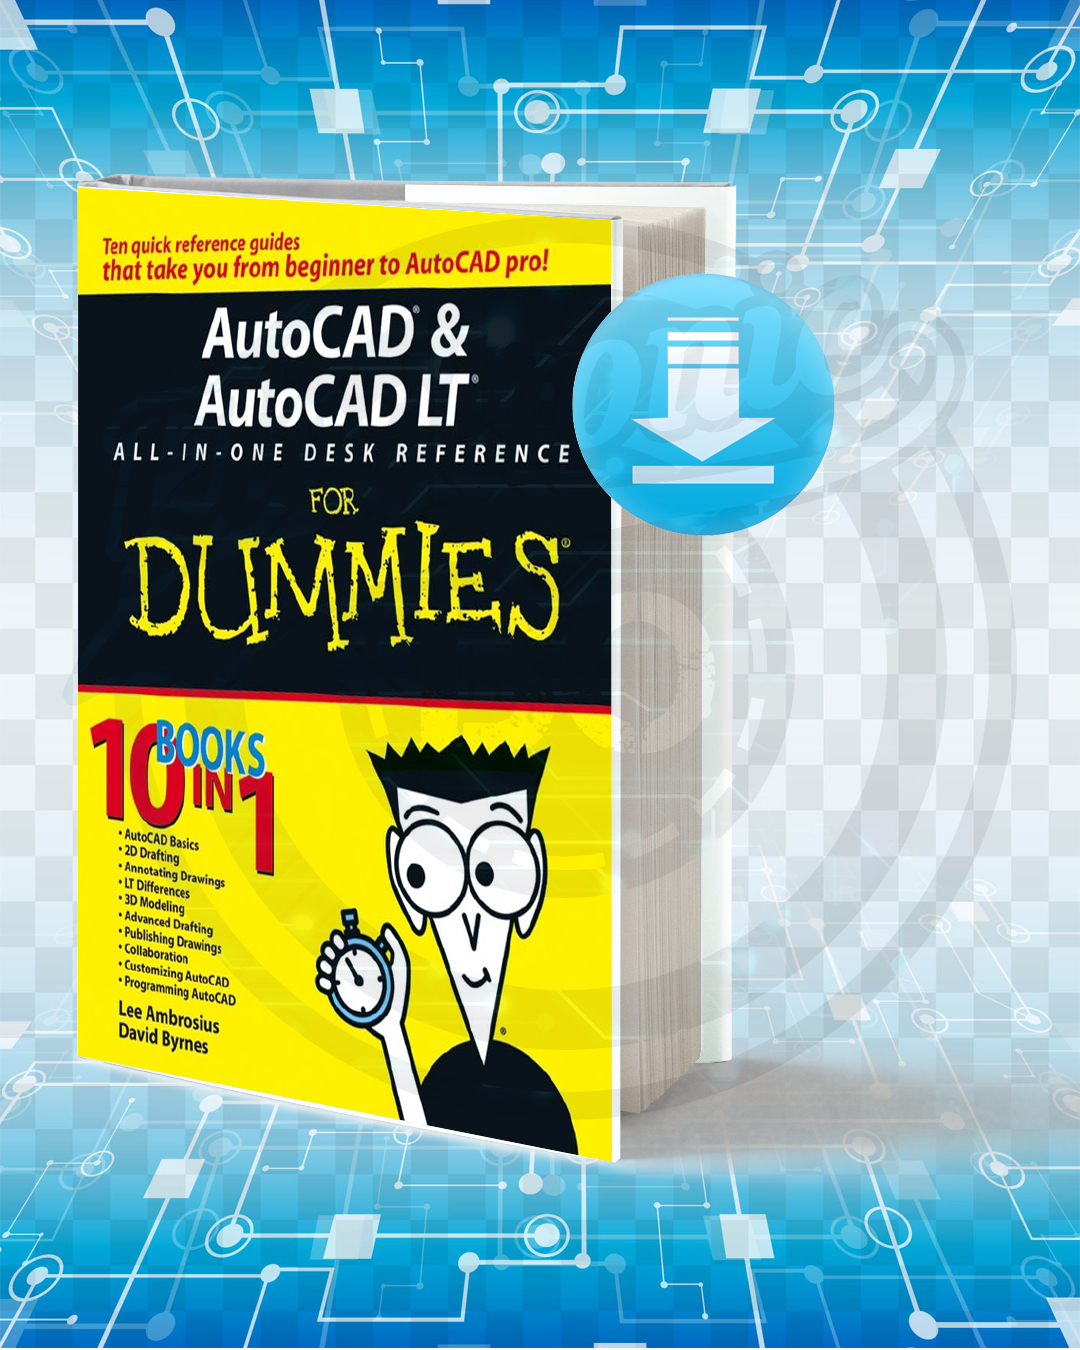 Free Book AutoCAD & AutoCAD LT All-in-One Desk Reference For Dummies pdf.